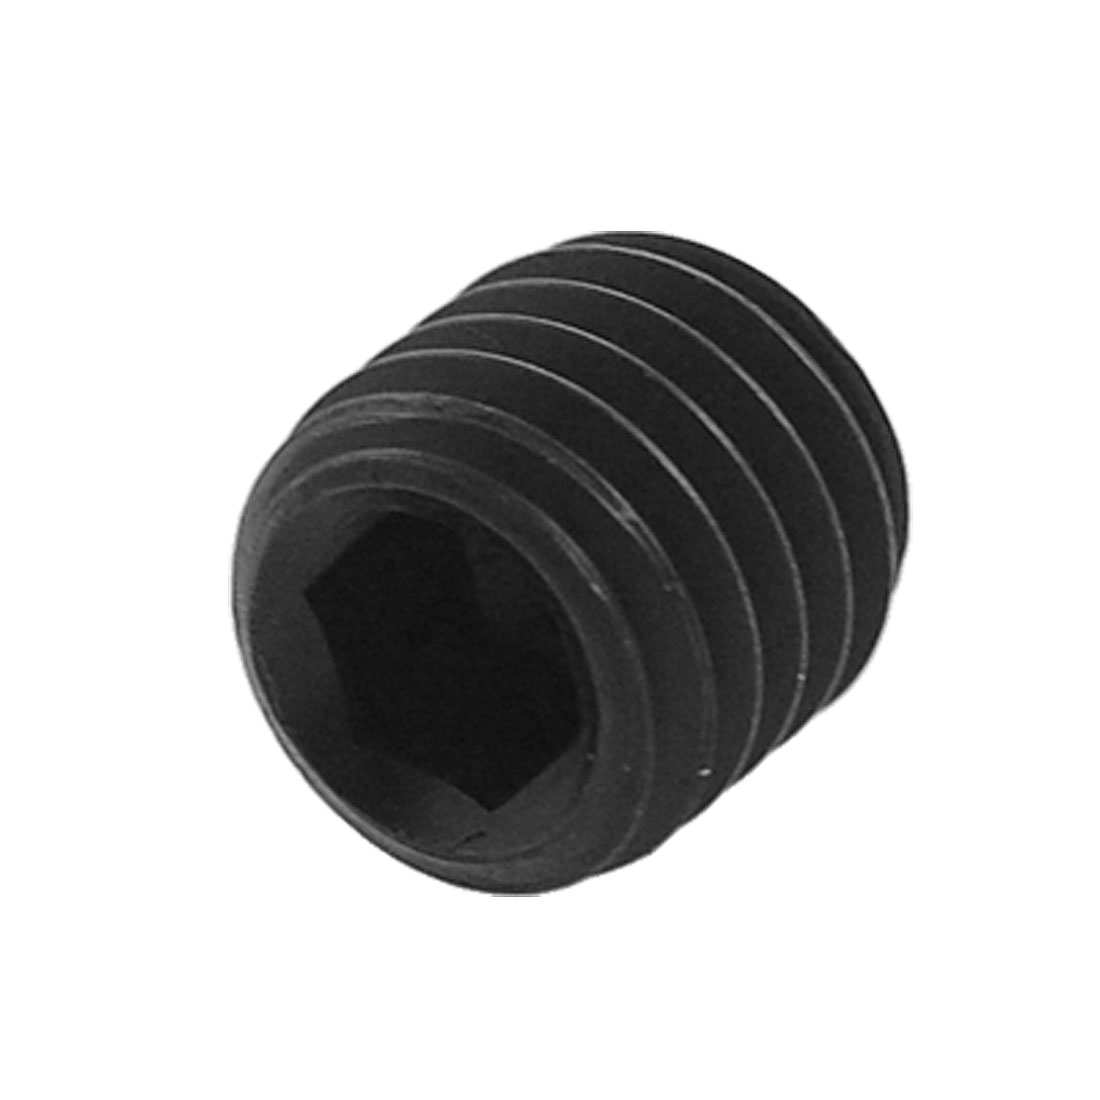 "5/16"" x 25/64"" Hexagon Socket Blk Grub Screw Bolt 3 Pcs"